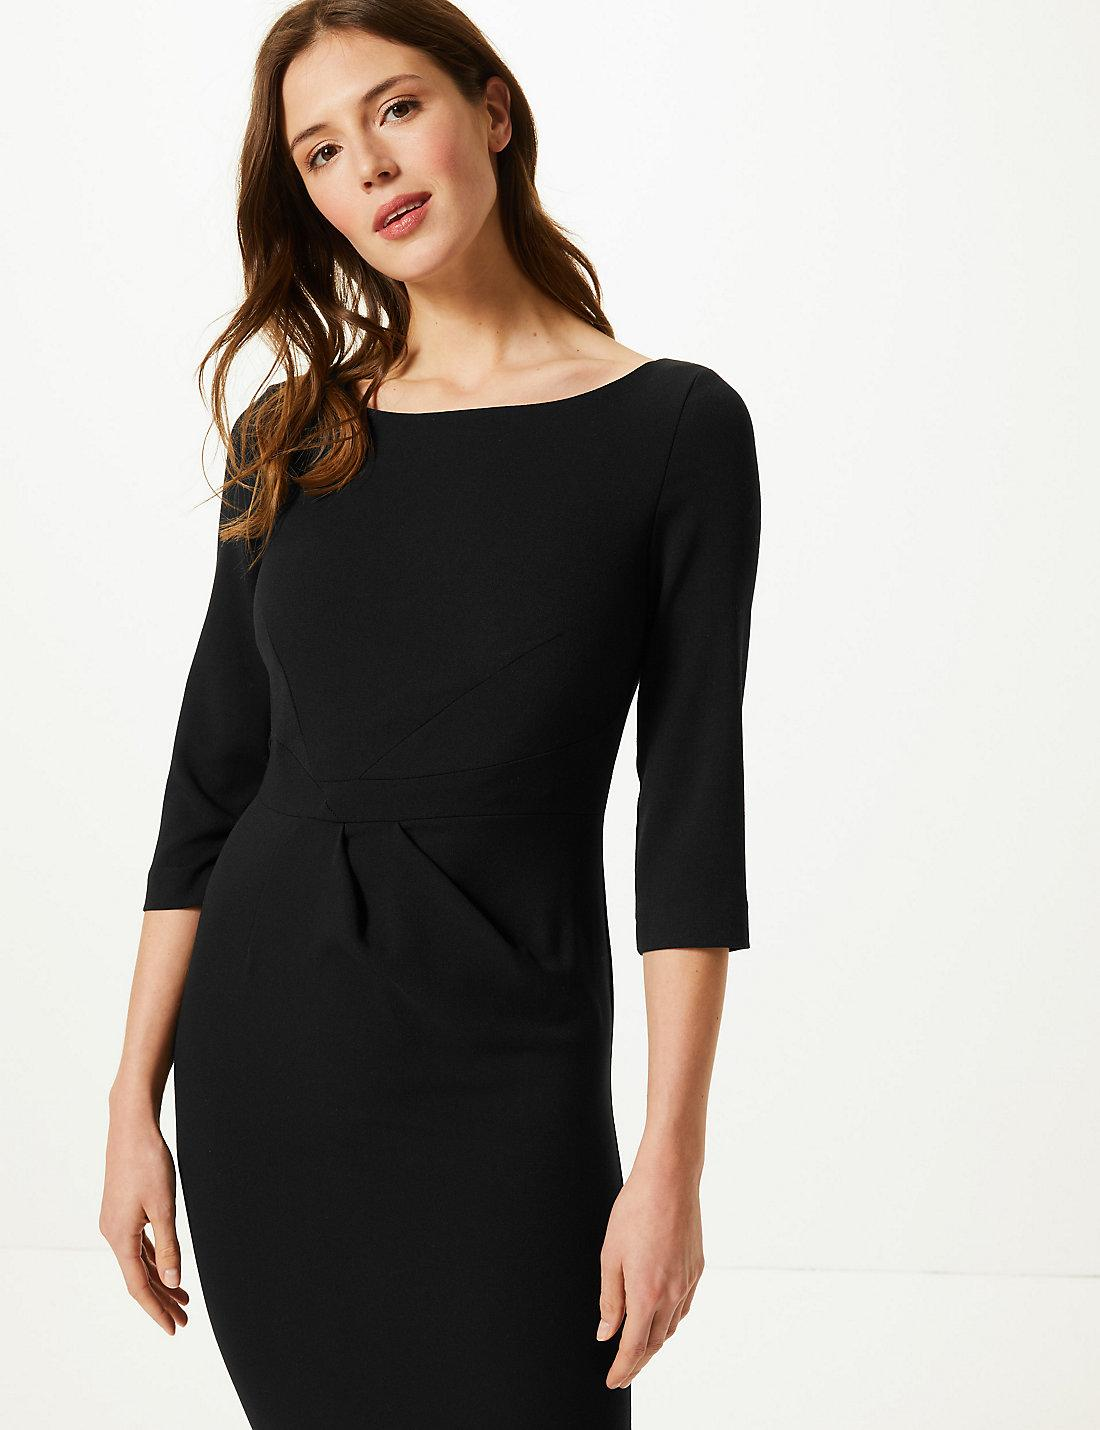 Marks and spencer bodycon dresses and plus size